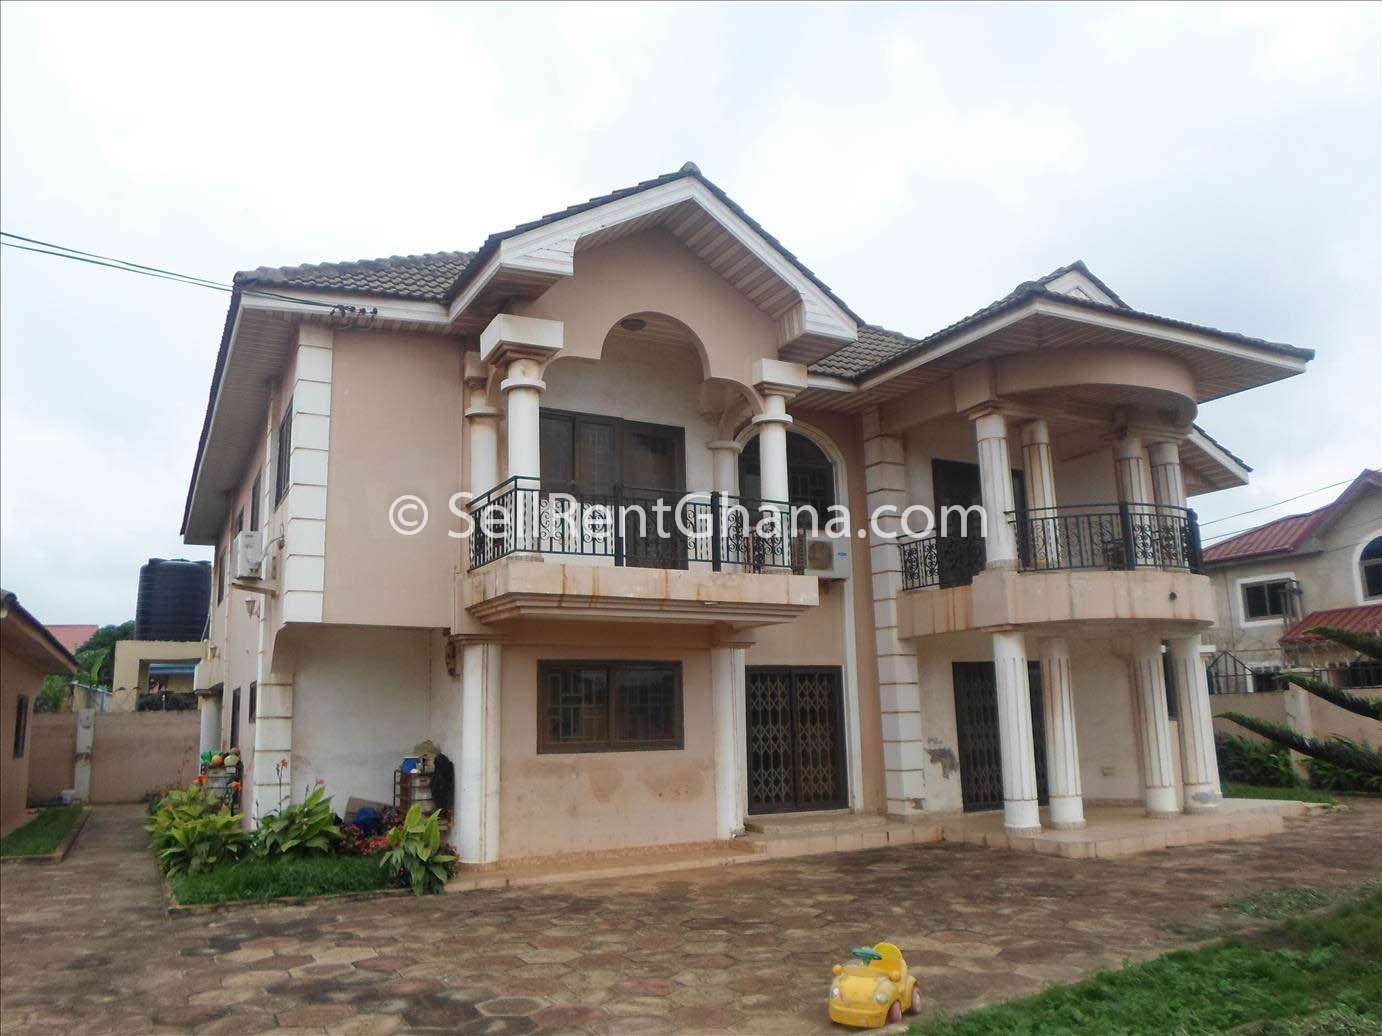 6 bedroom house for sale in spintex sellrent ghana for 6 bedroom homes